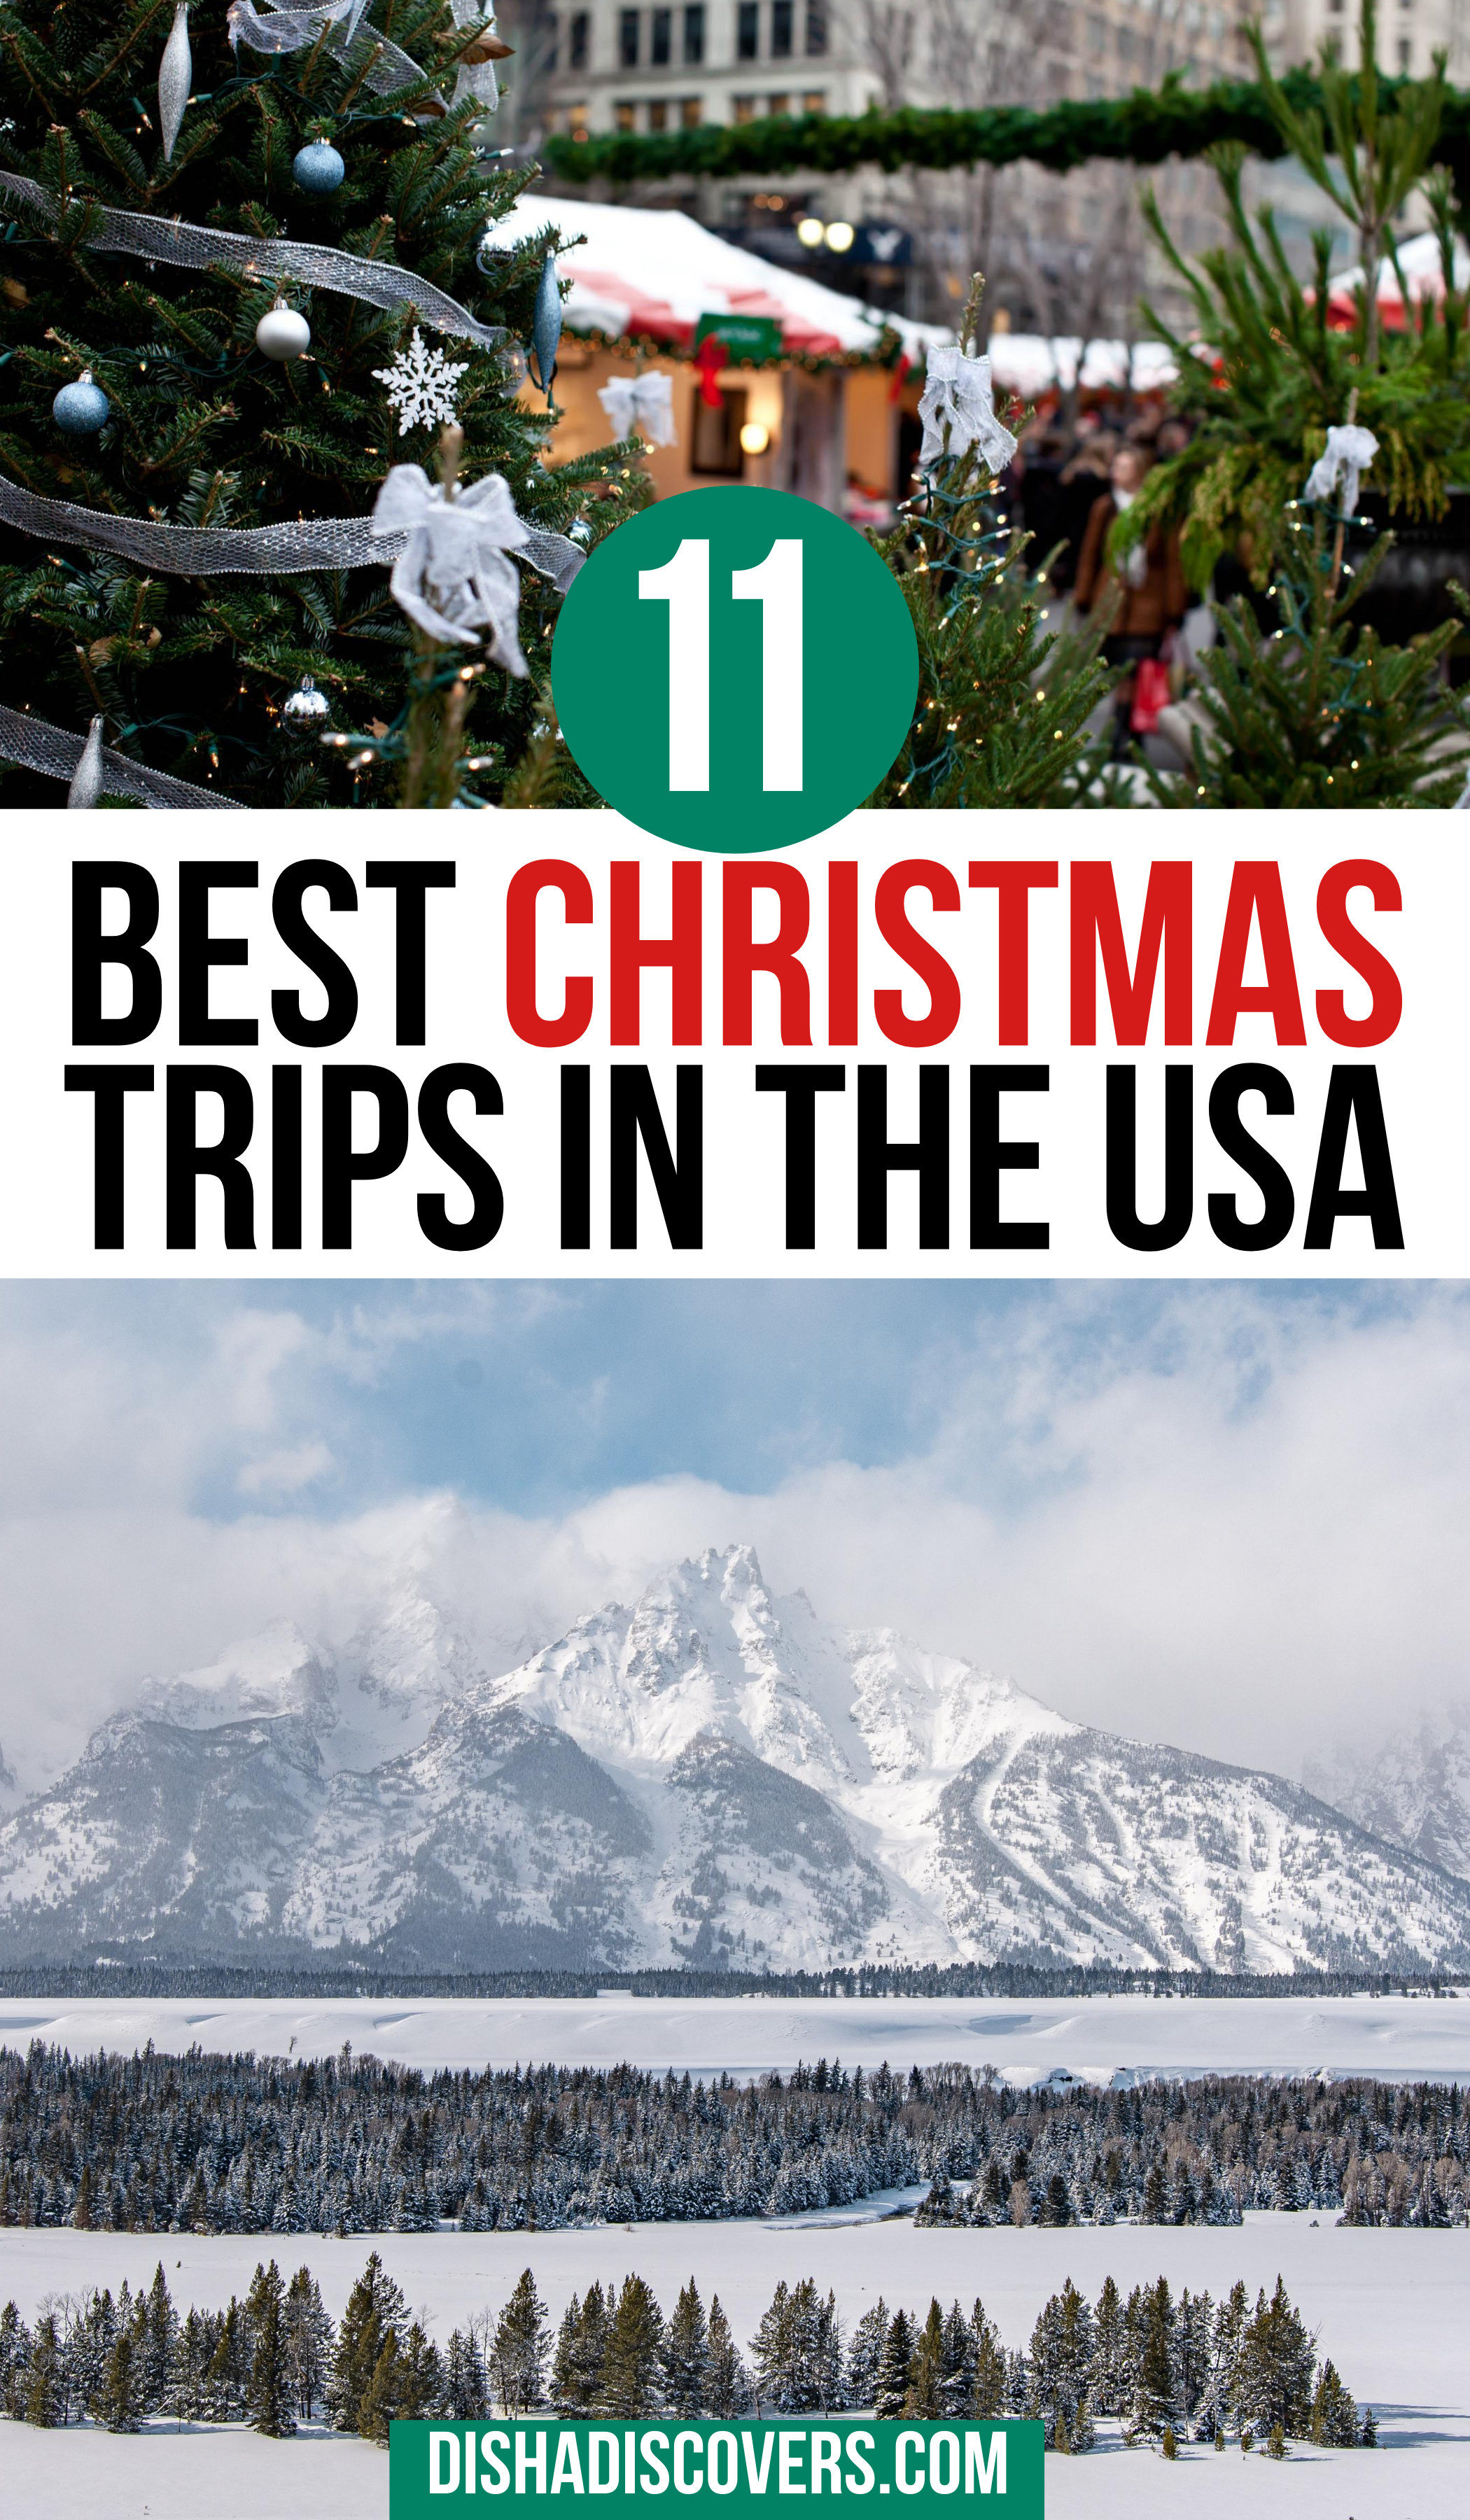 USA Christmas Destinations: 11 of the Best Holiday Getaways in